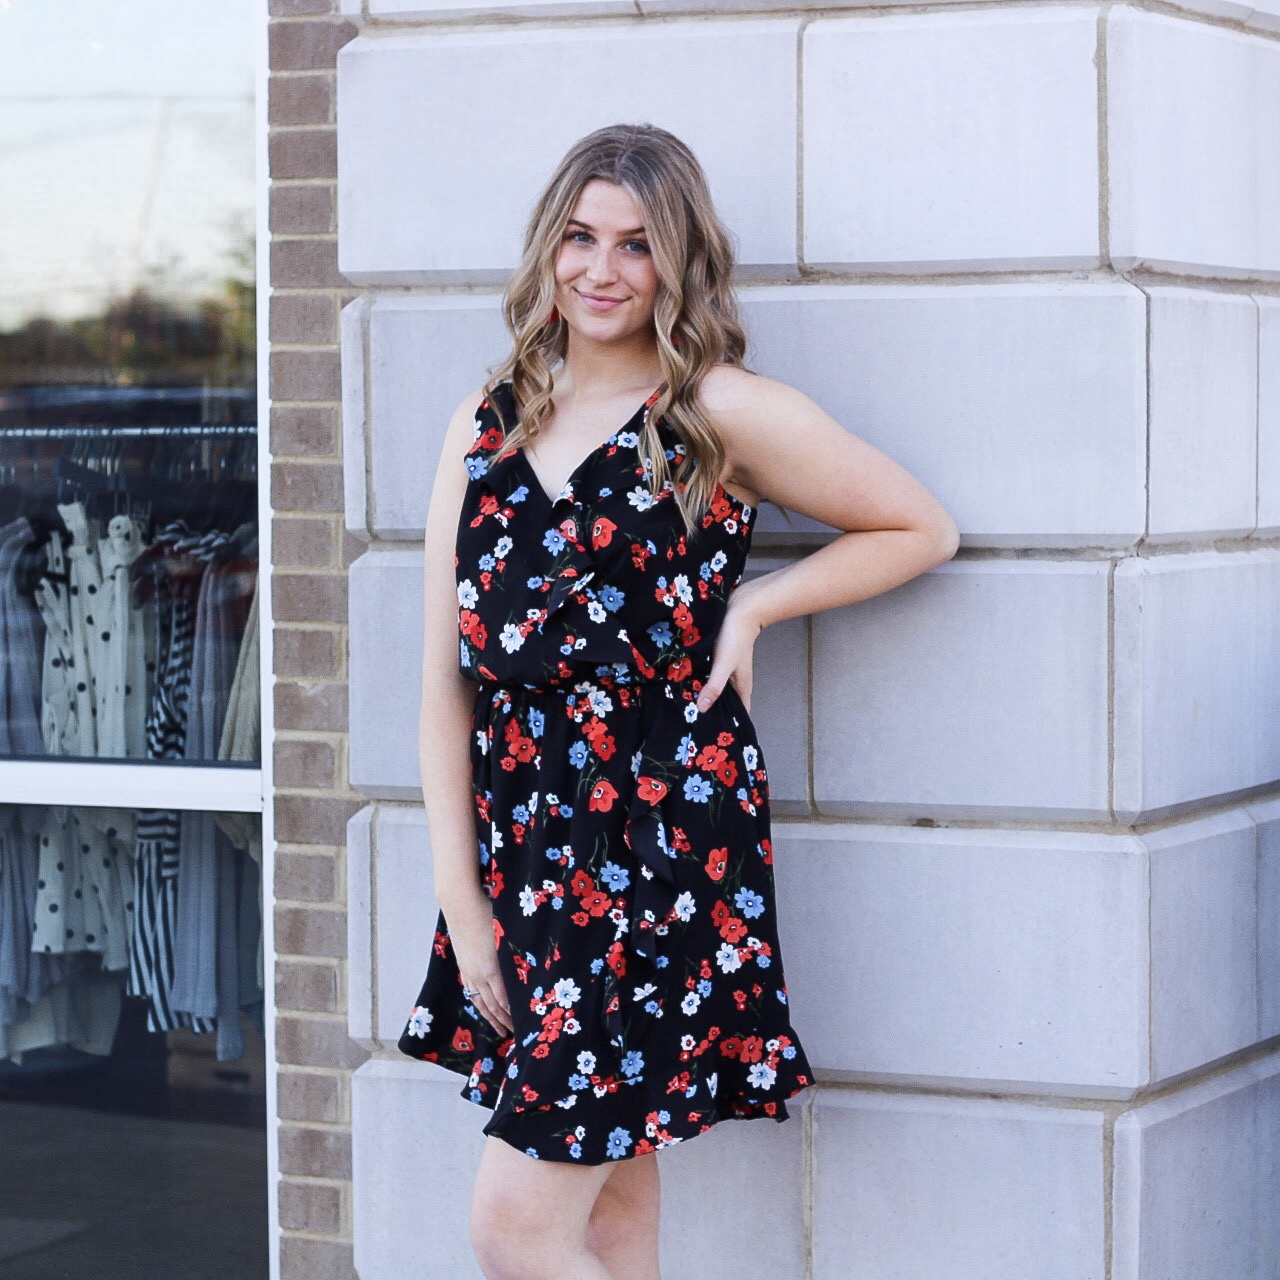 Blk/Blu/Red Ruffle Floral Dress